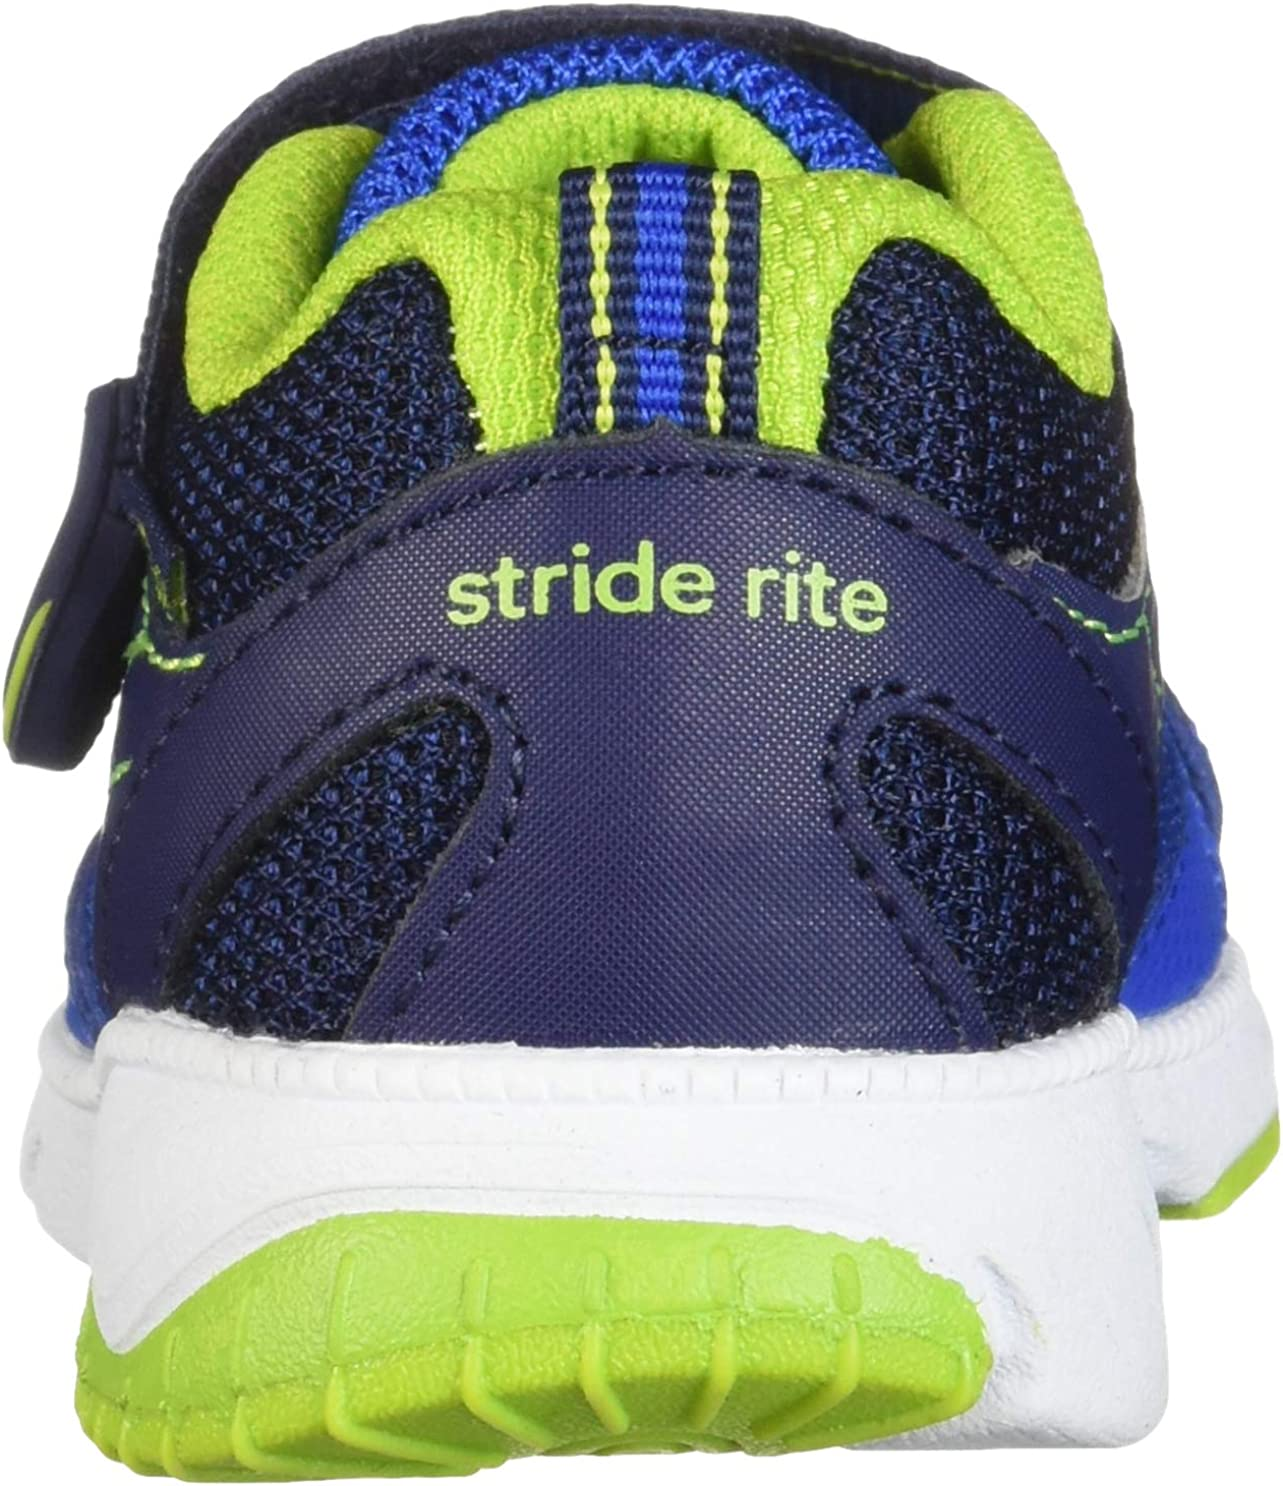 Stride Rite Kids Made2play Indy Boys//Girls Machine Washable Sneaker